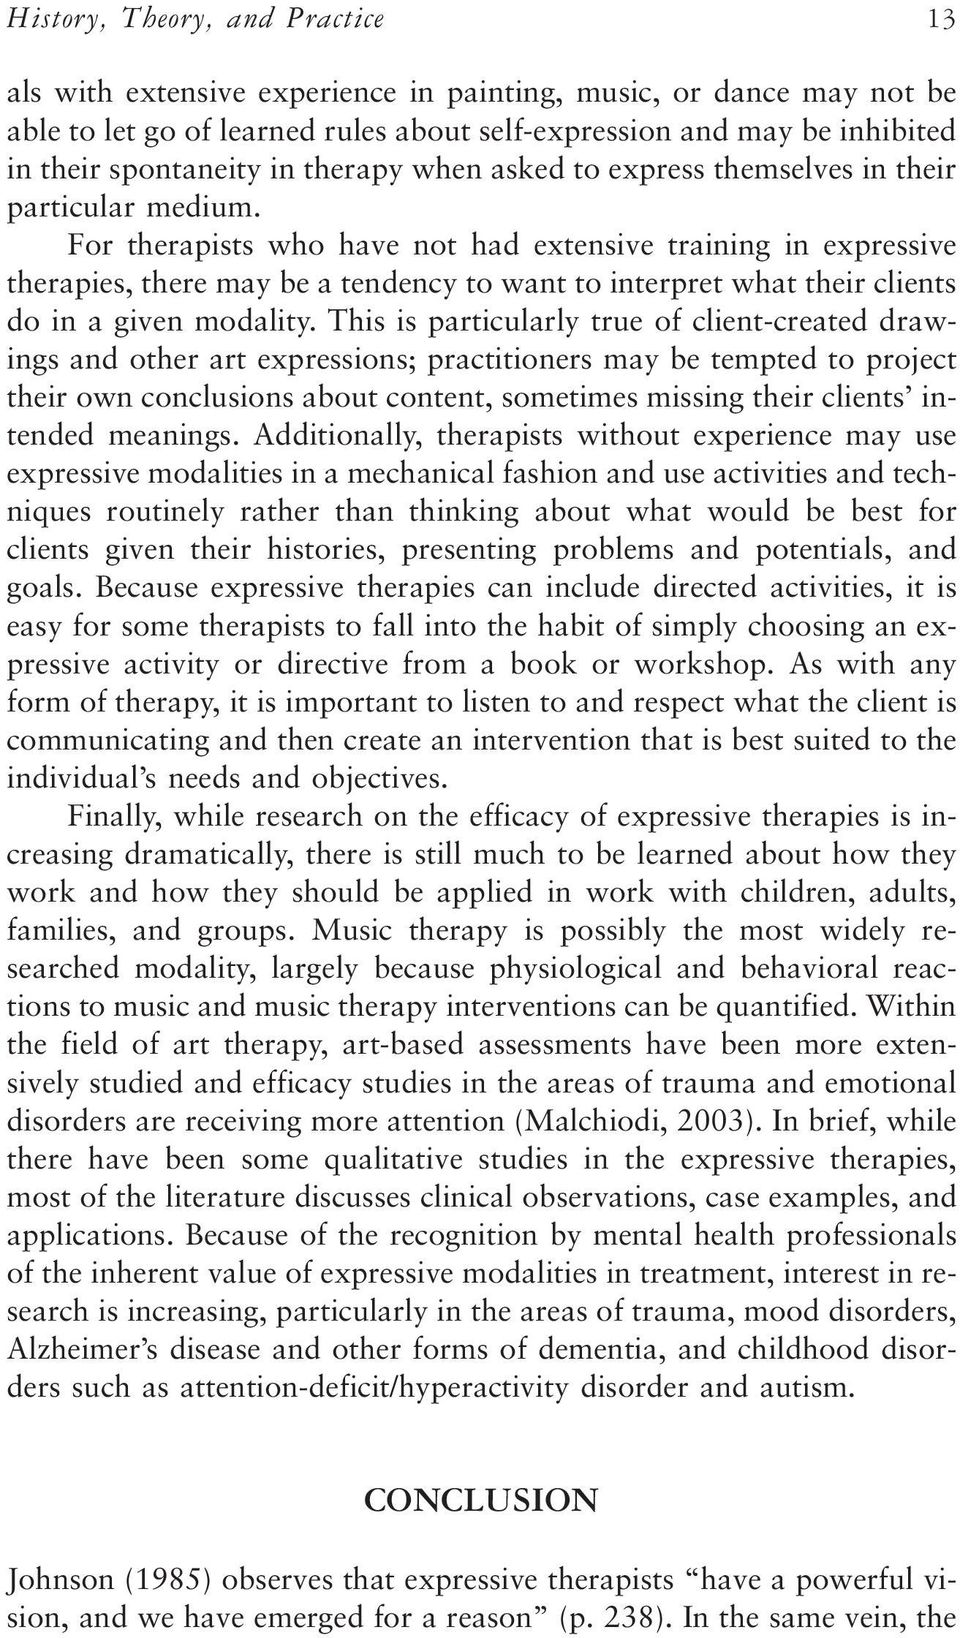 For therapists who have not had extensive training in expressive therapies, there may be a tendency to want to interpret what their clients do in a given modality.